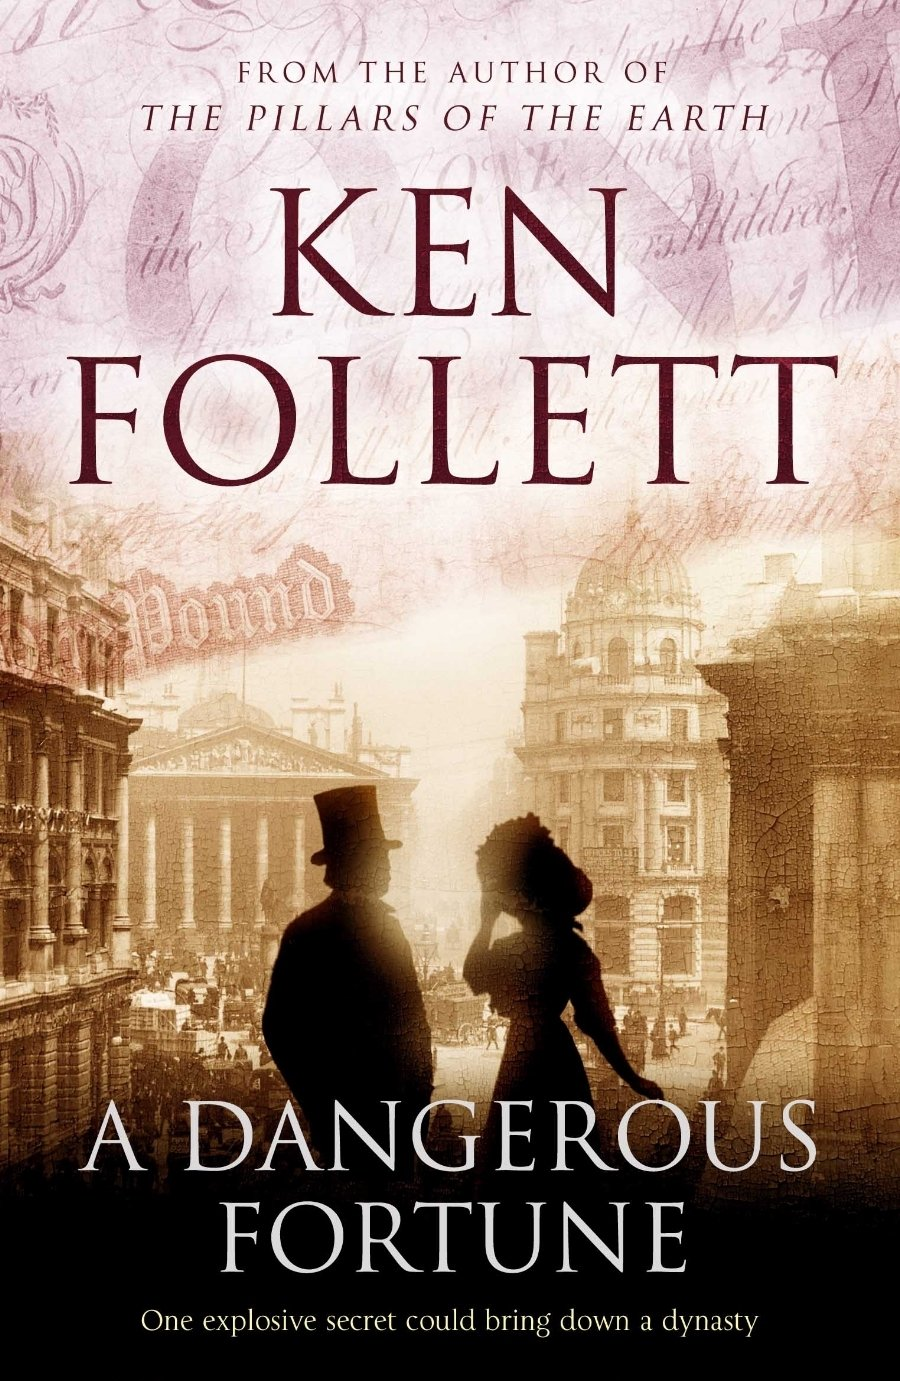 Ken Follett – A Dangerous Fortune